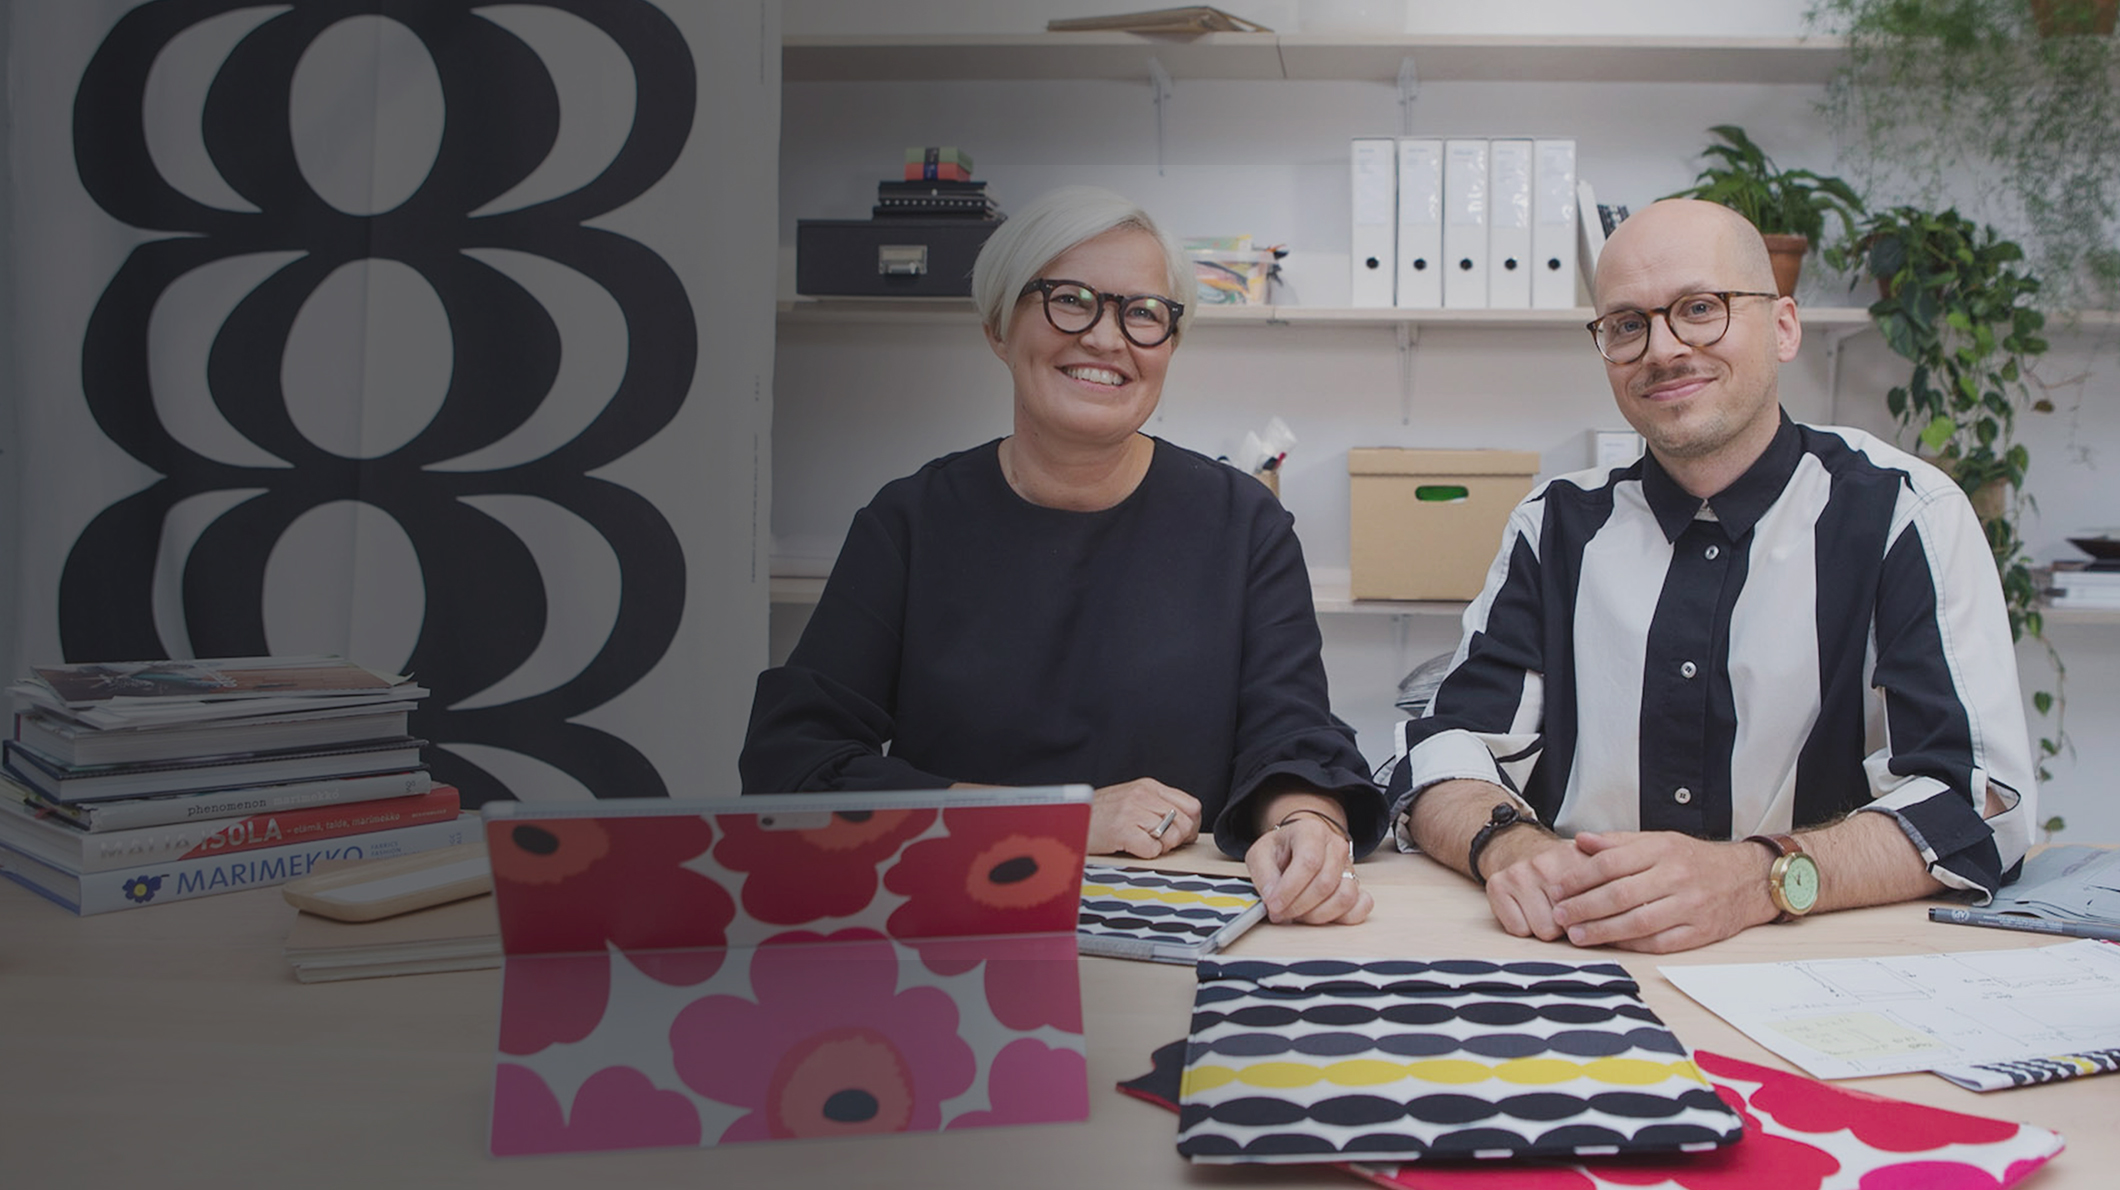 Marimekko for Surface designers